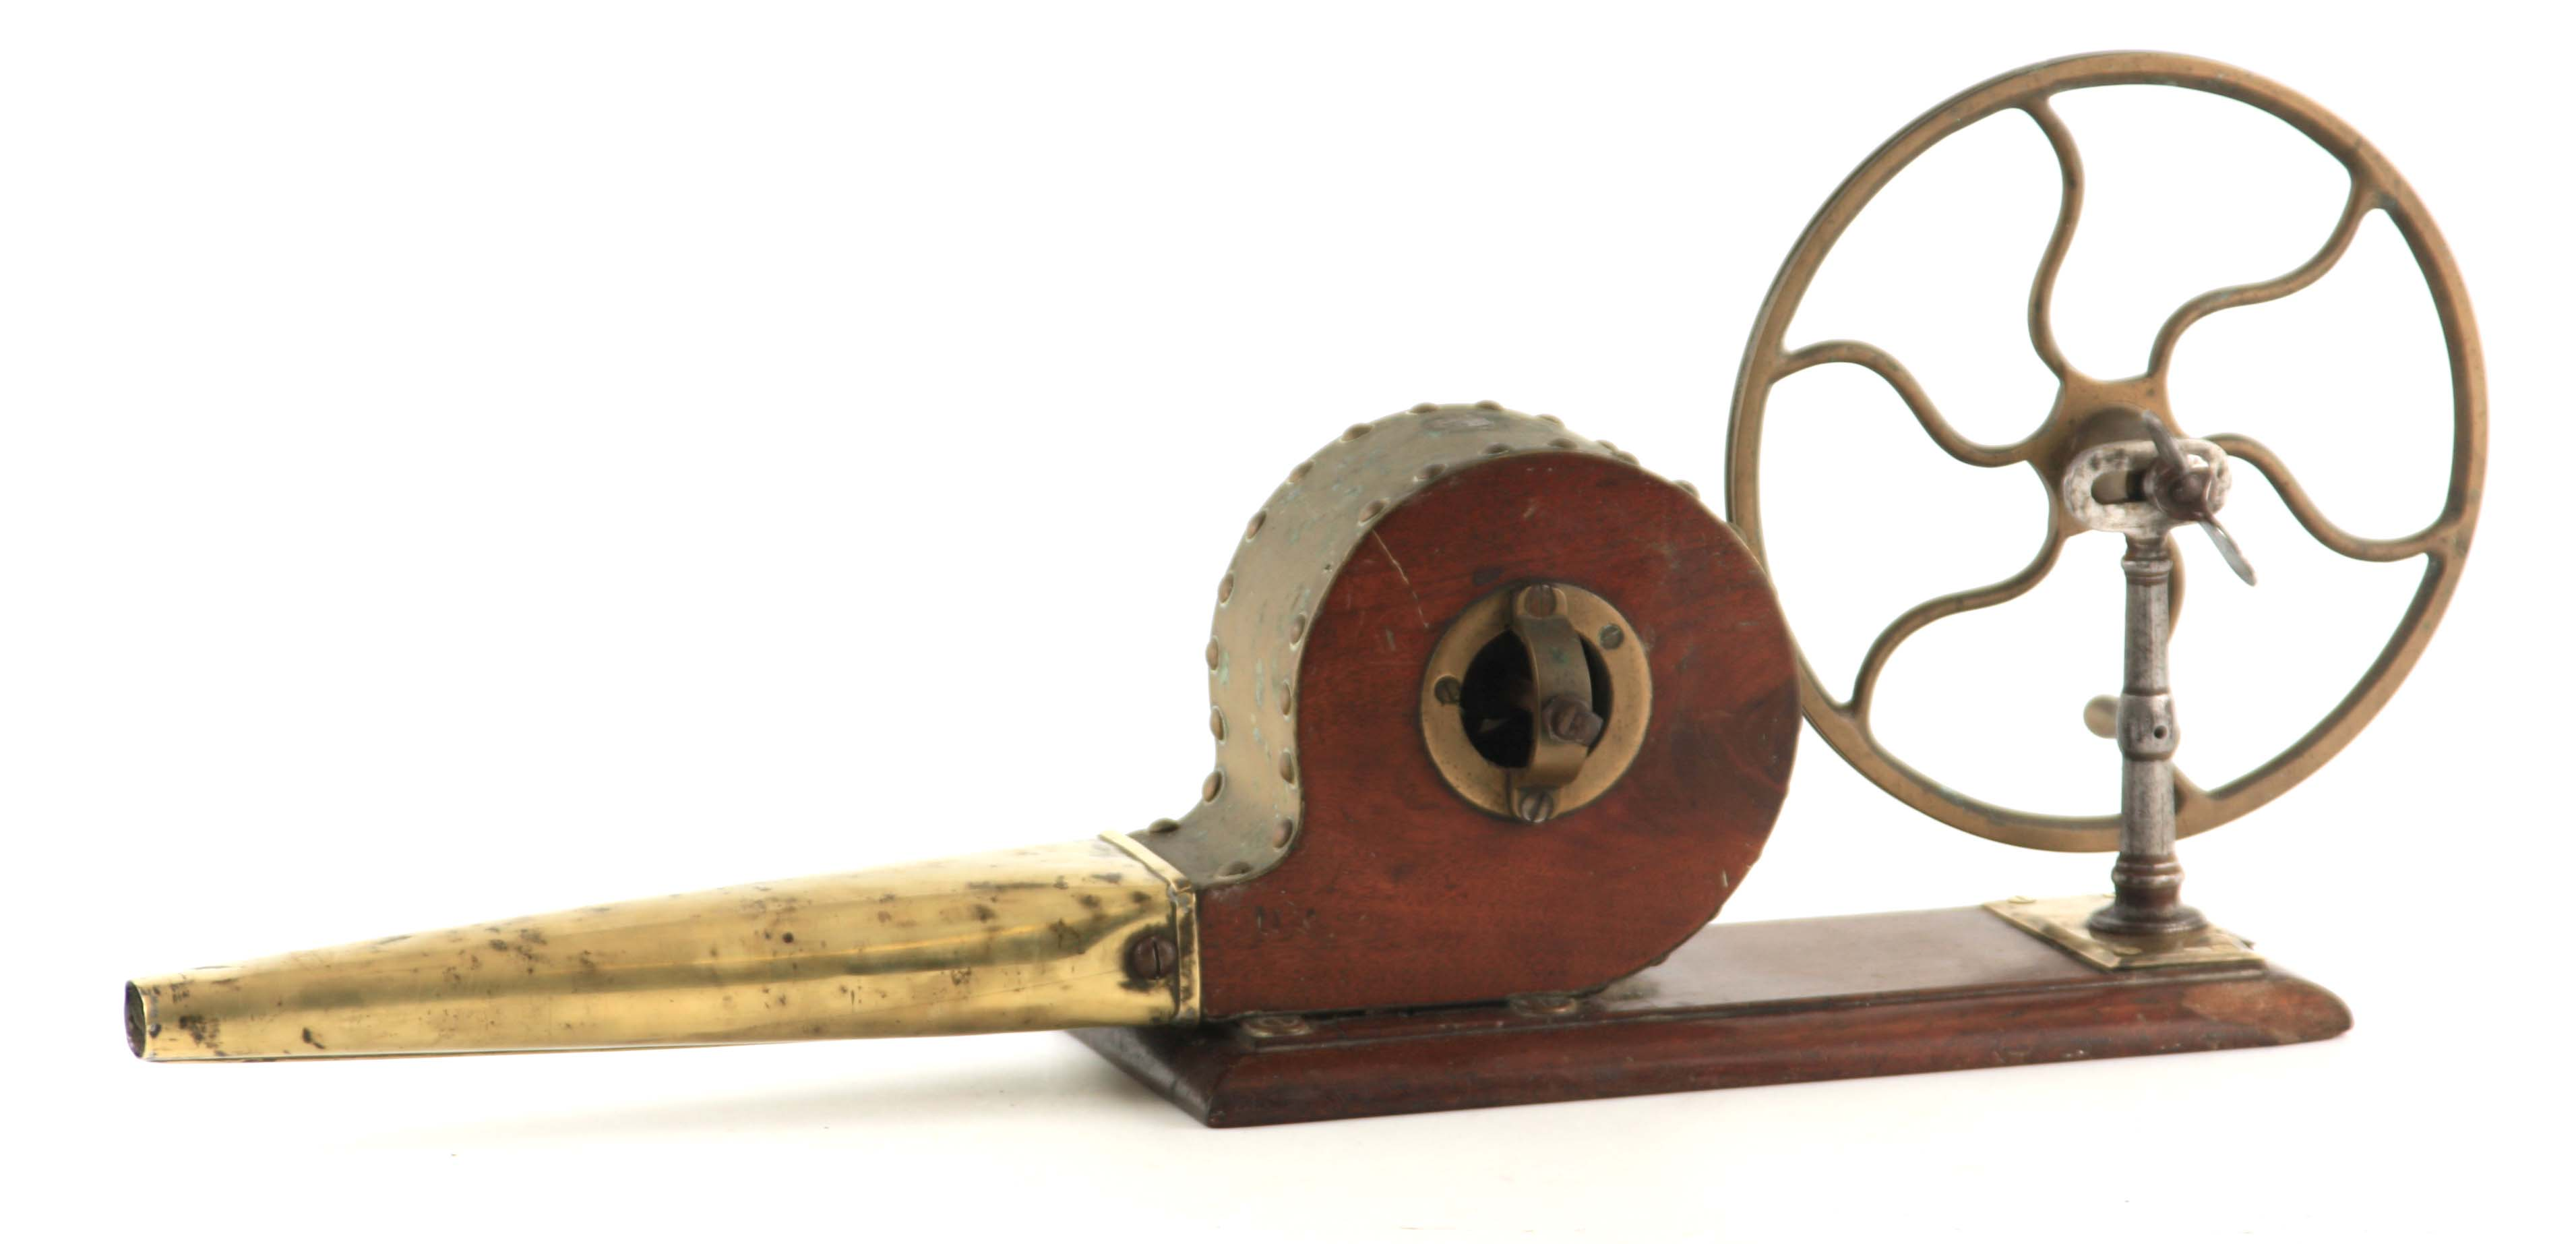 AN EARLY 19TH CENTURY SET OF FIRE BELLOWS with six spoke wheel and funnel, mounted on a mahogany